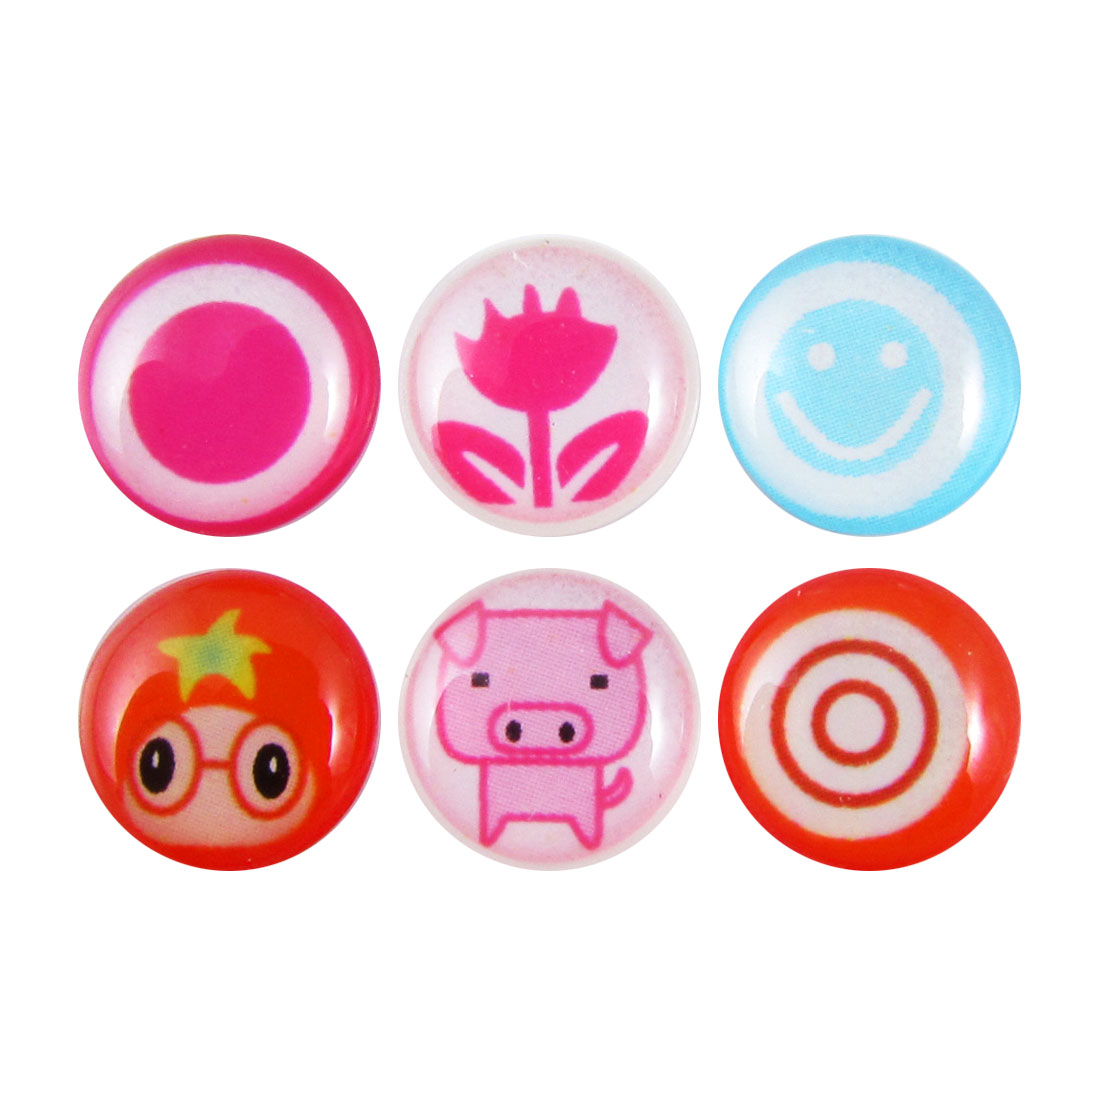 Pig Circle Flower Pattern Home Button Sticker 6 Pcs for Cell Phone